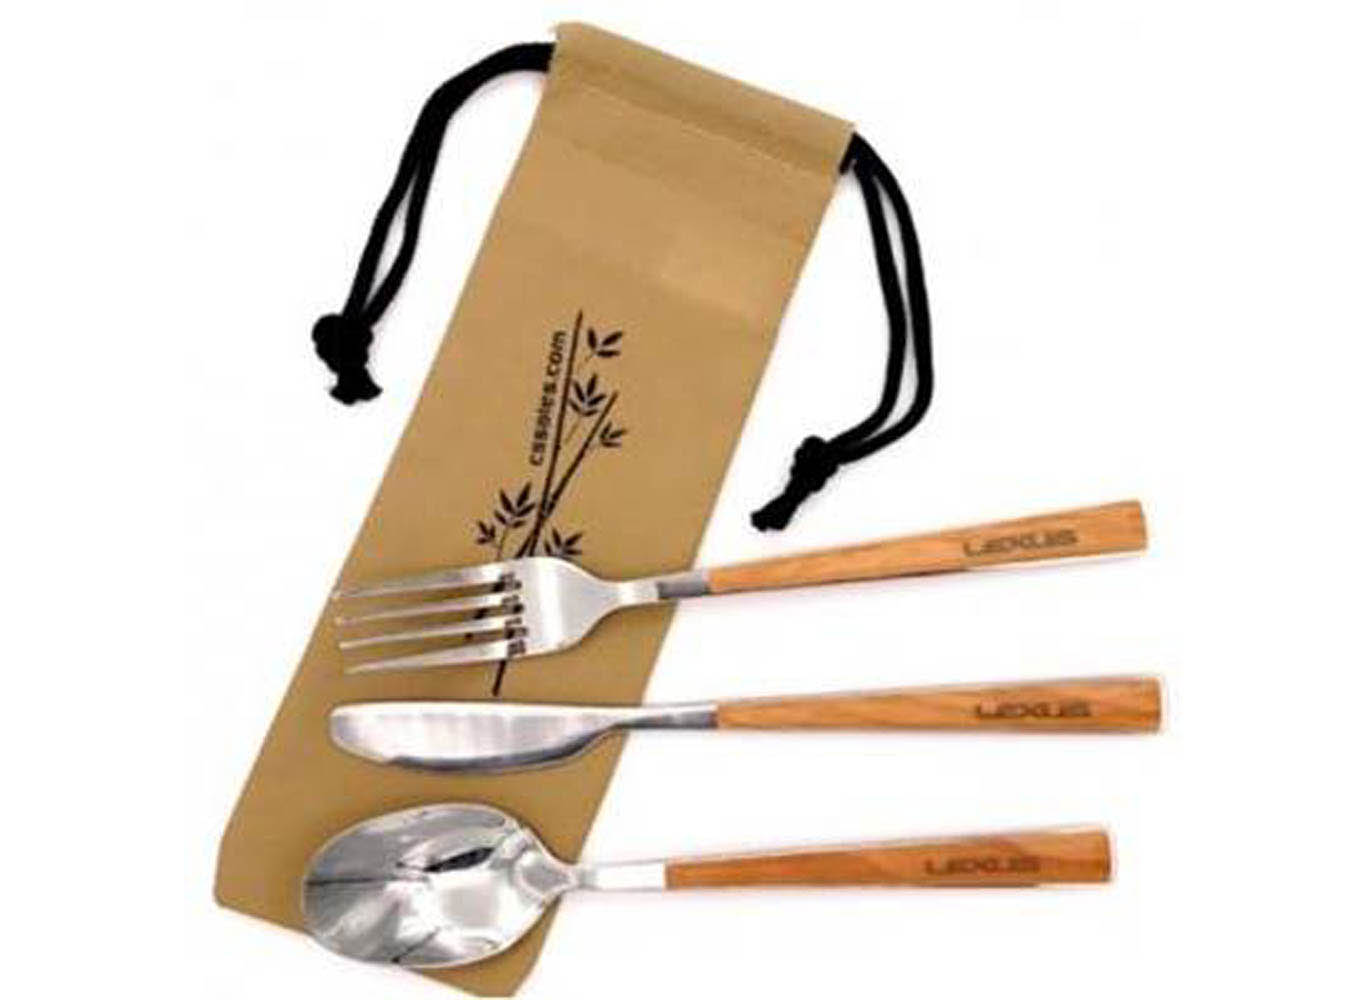 Stainless steel utensil cutlery set with pouch